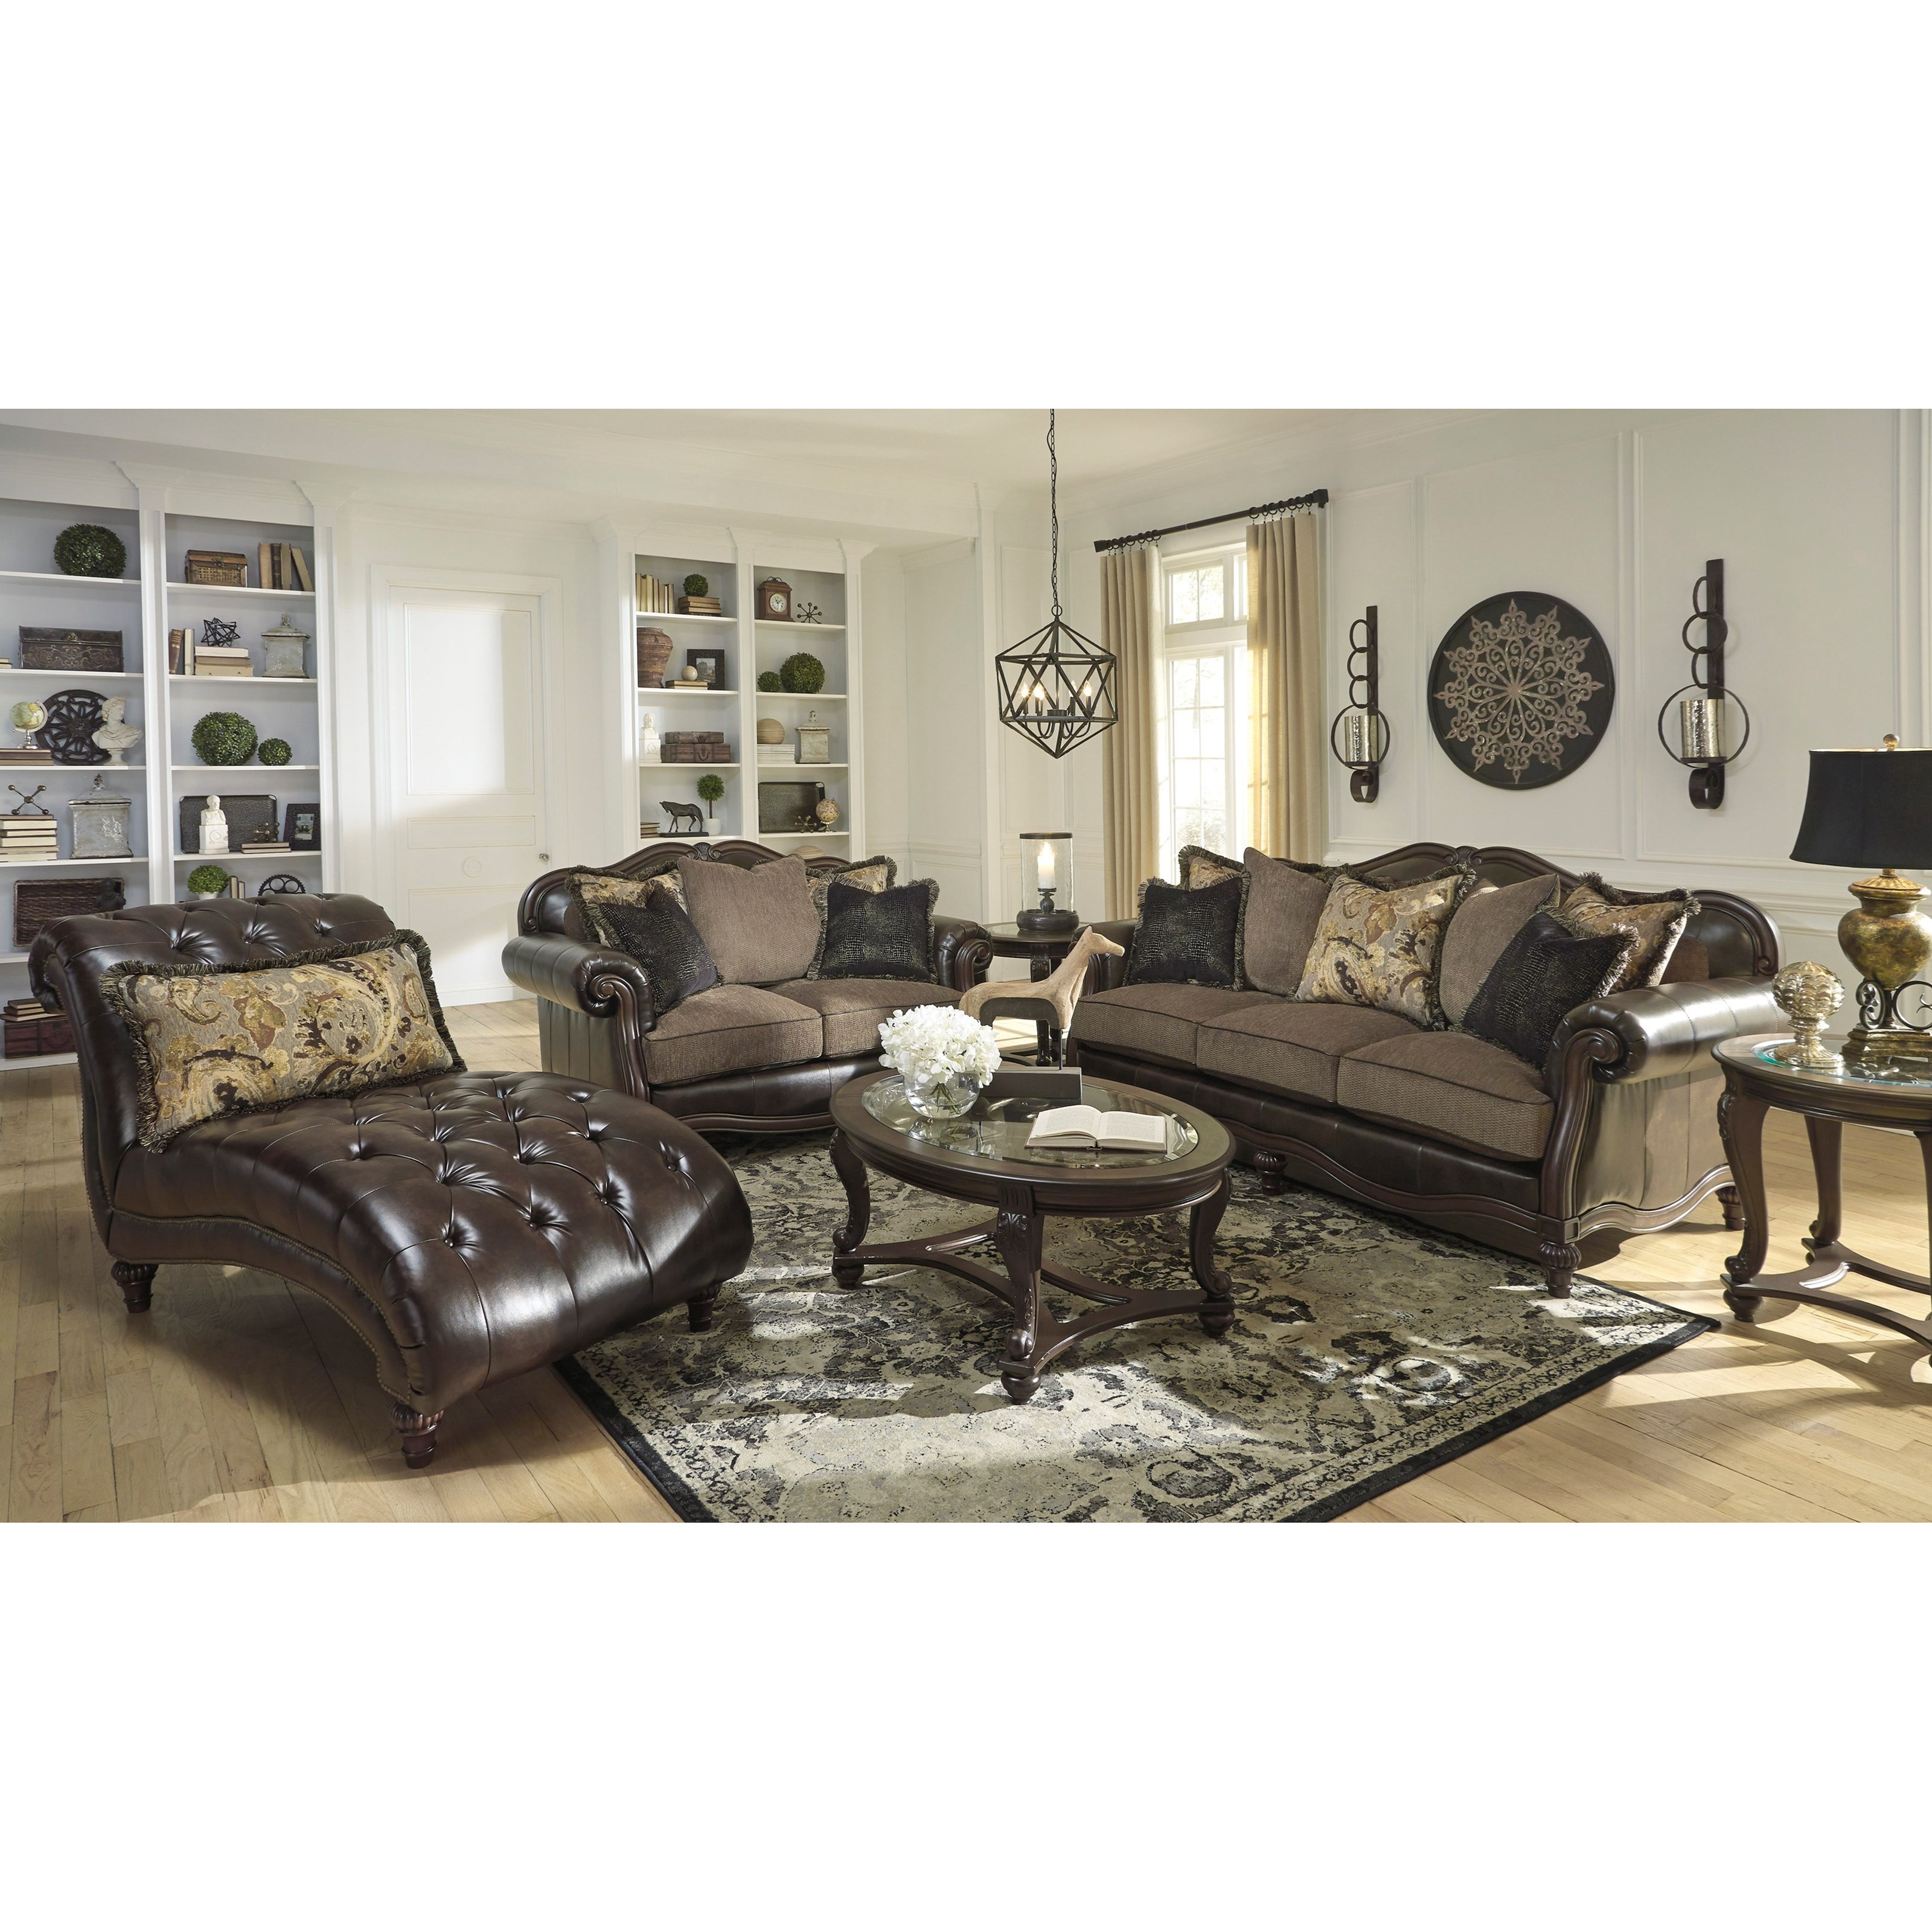 Signature Design By Ashley Winnsboro Durablend Stationary Living Room Group Del Sol Furniture